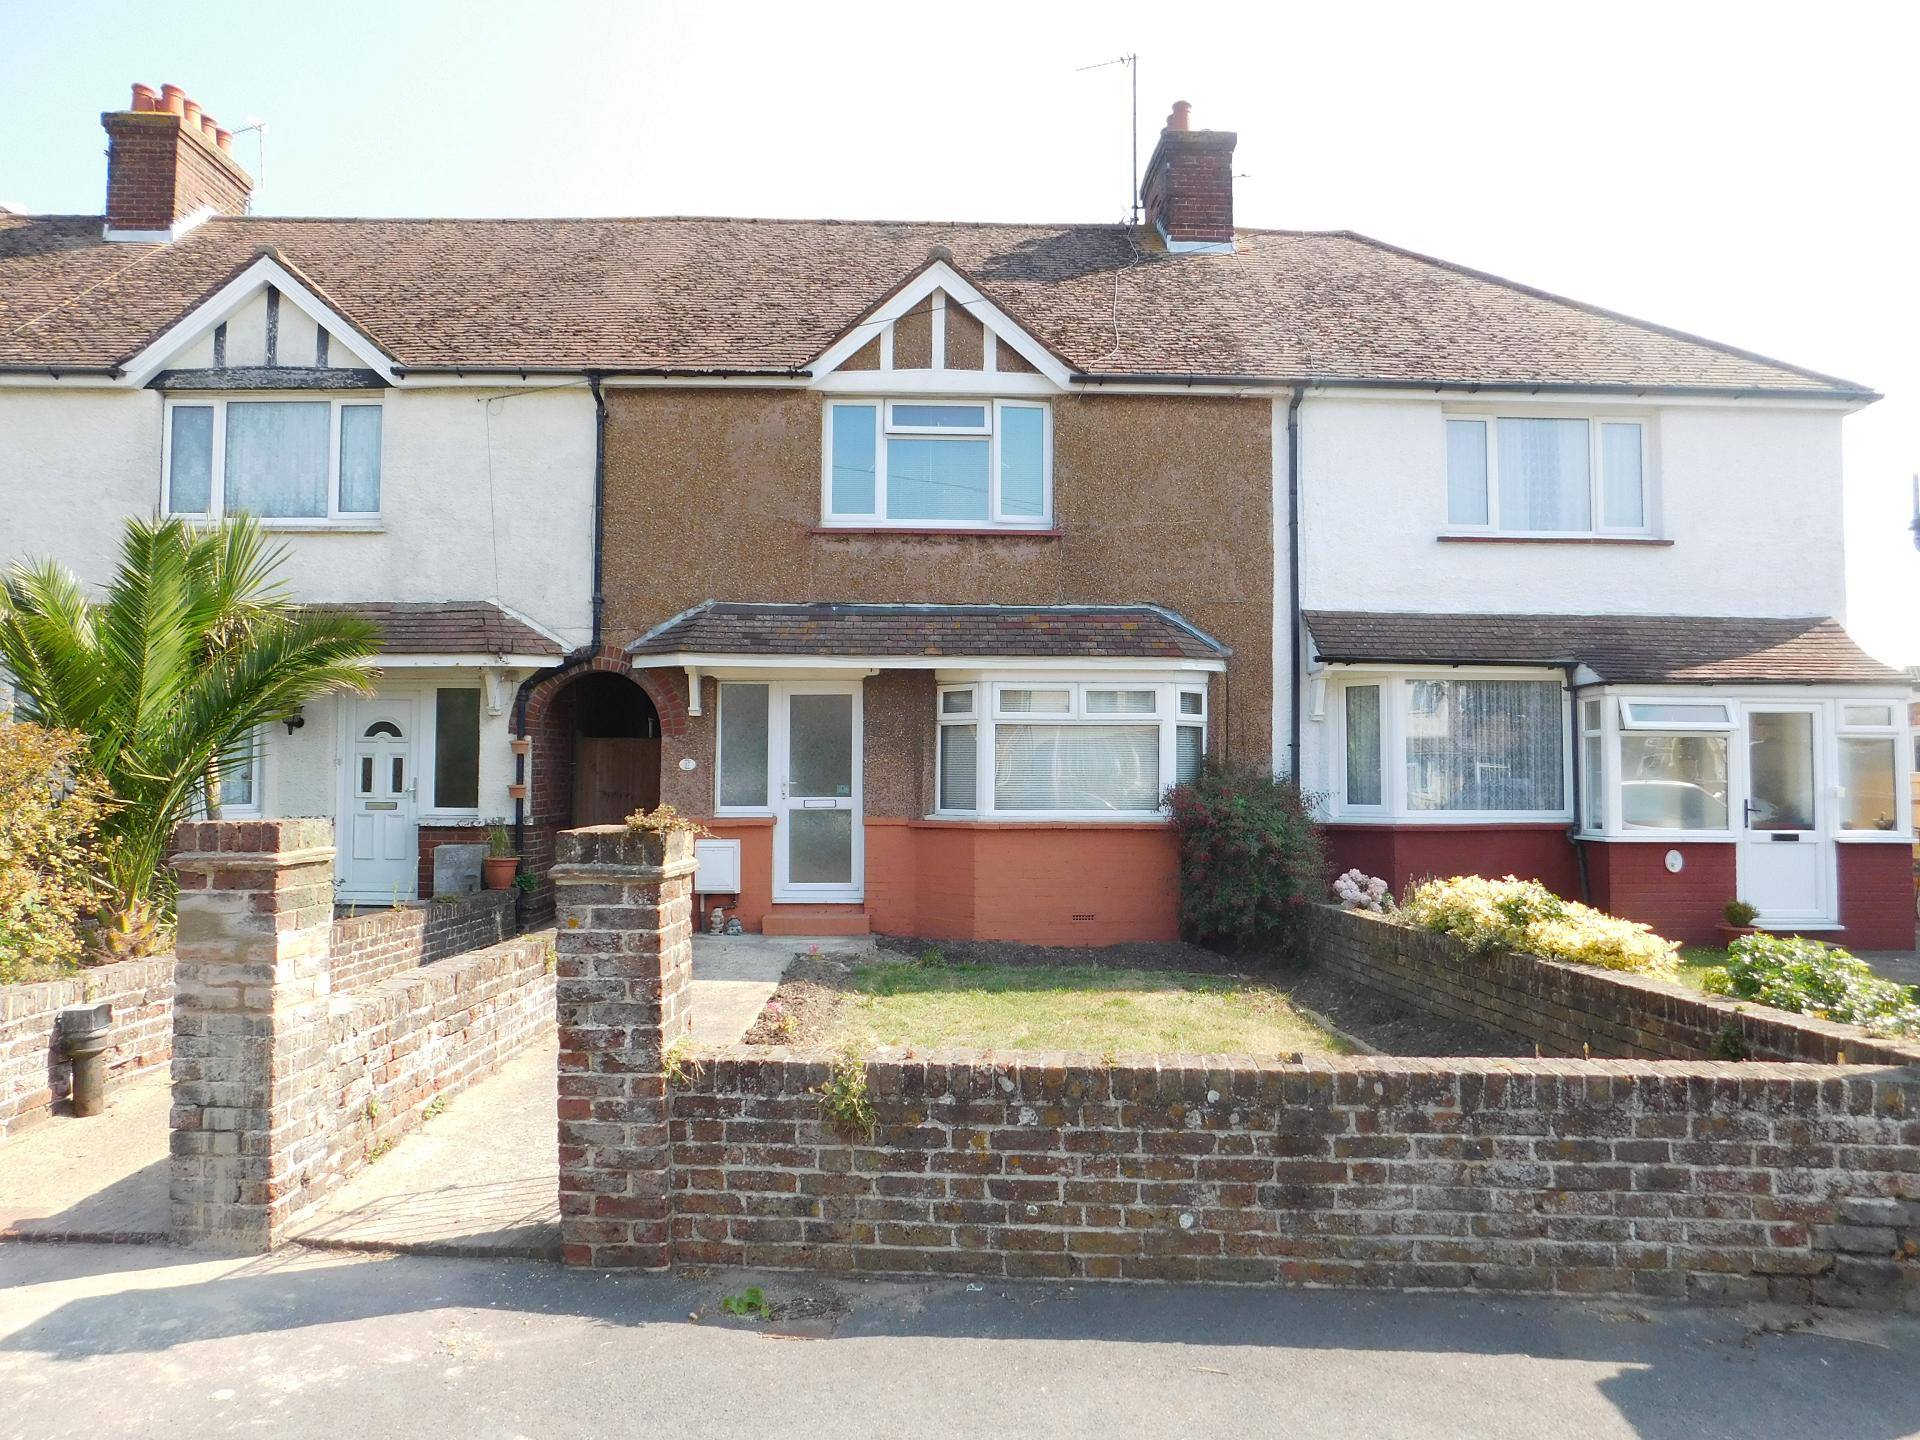 3 bedroom terrace for sale in st anthony 39 s eastbourne for 50 eastbourne terrace